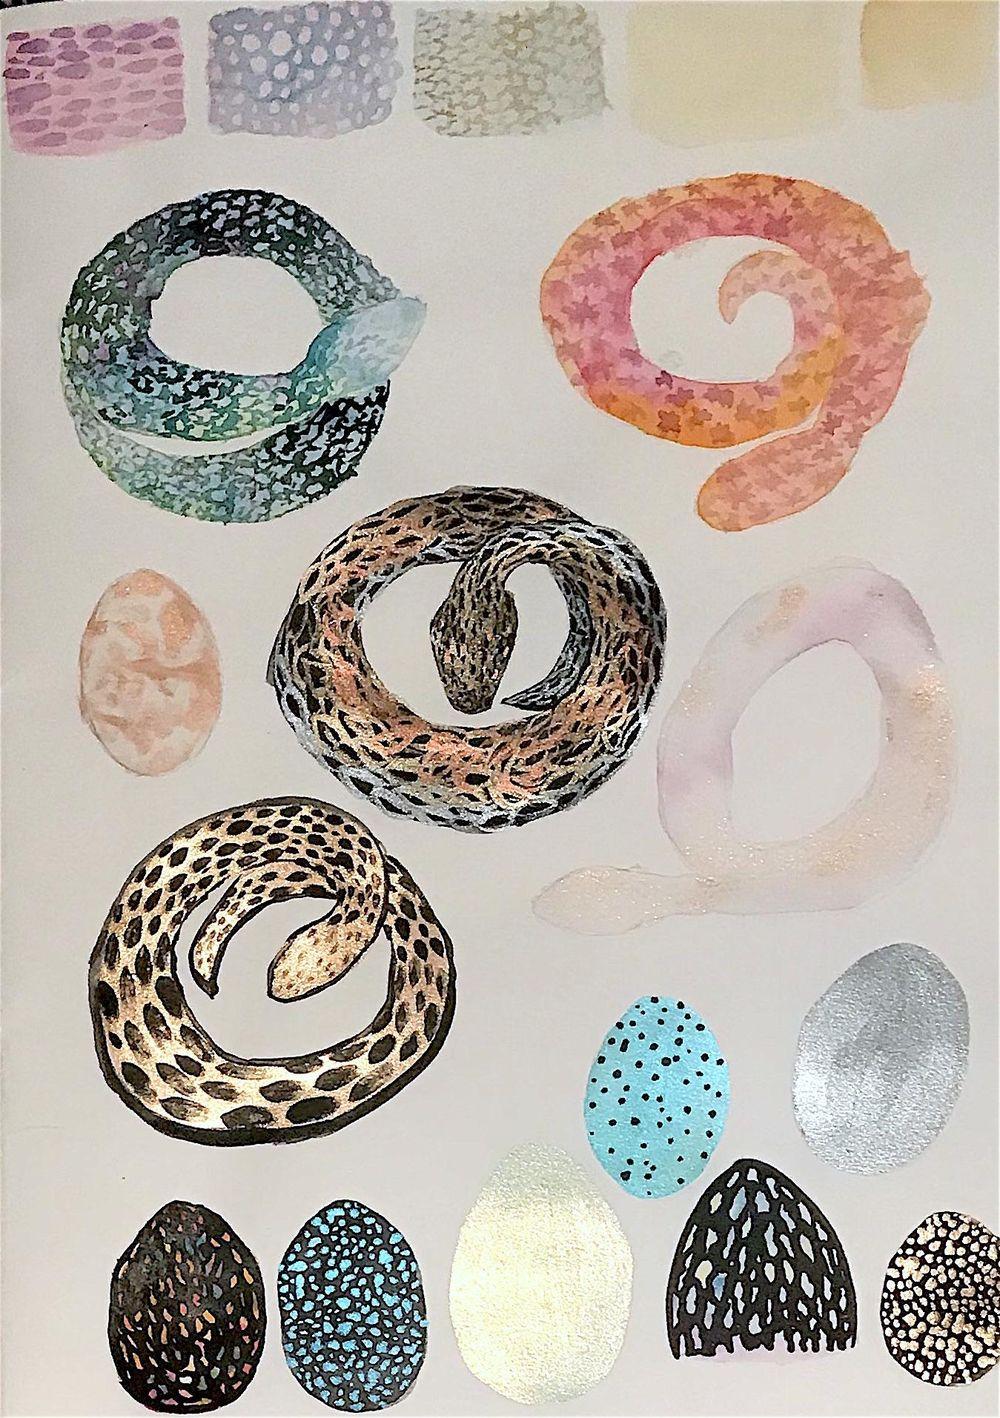 Metallic pythons and eggs - image 3 - student project